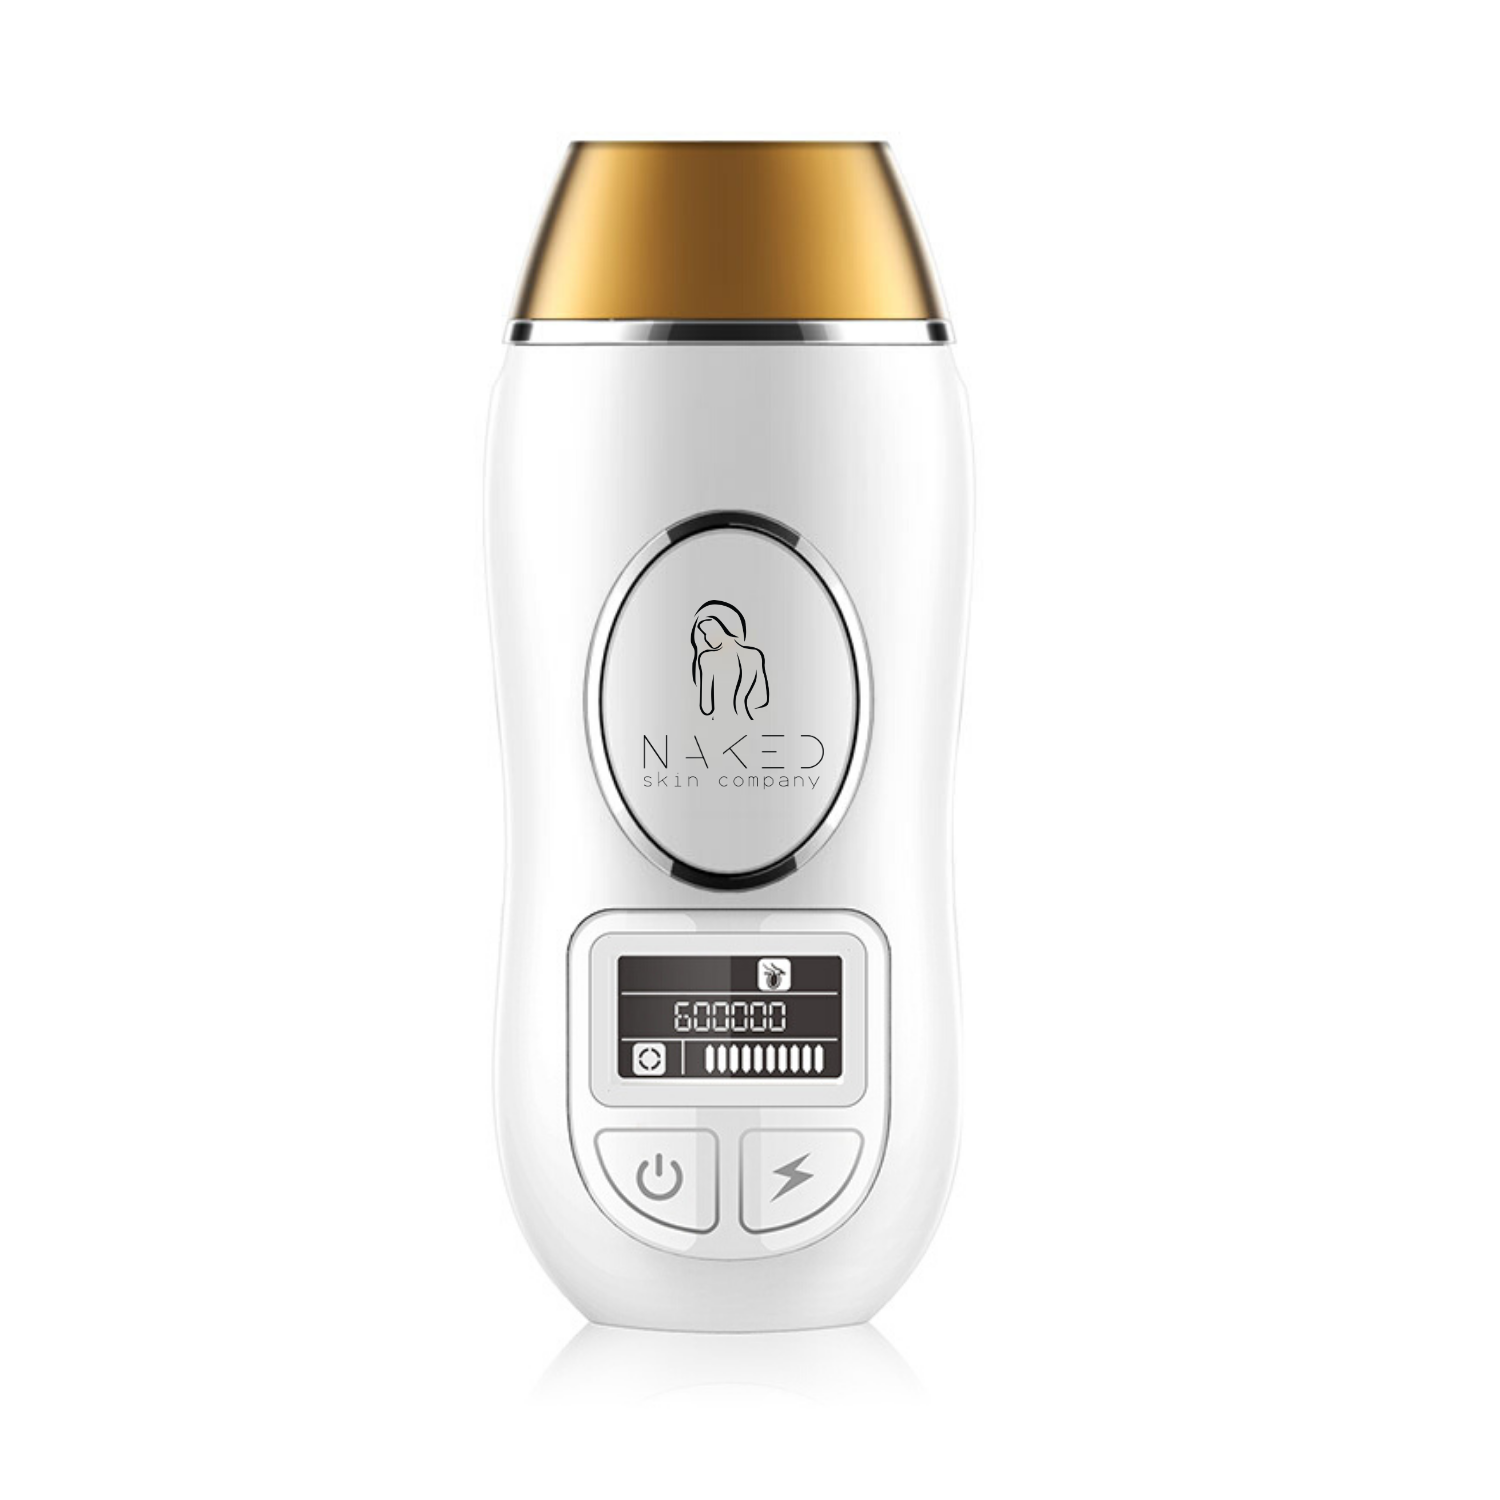 The Apollo IPL - Next Gen Hair Removal